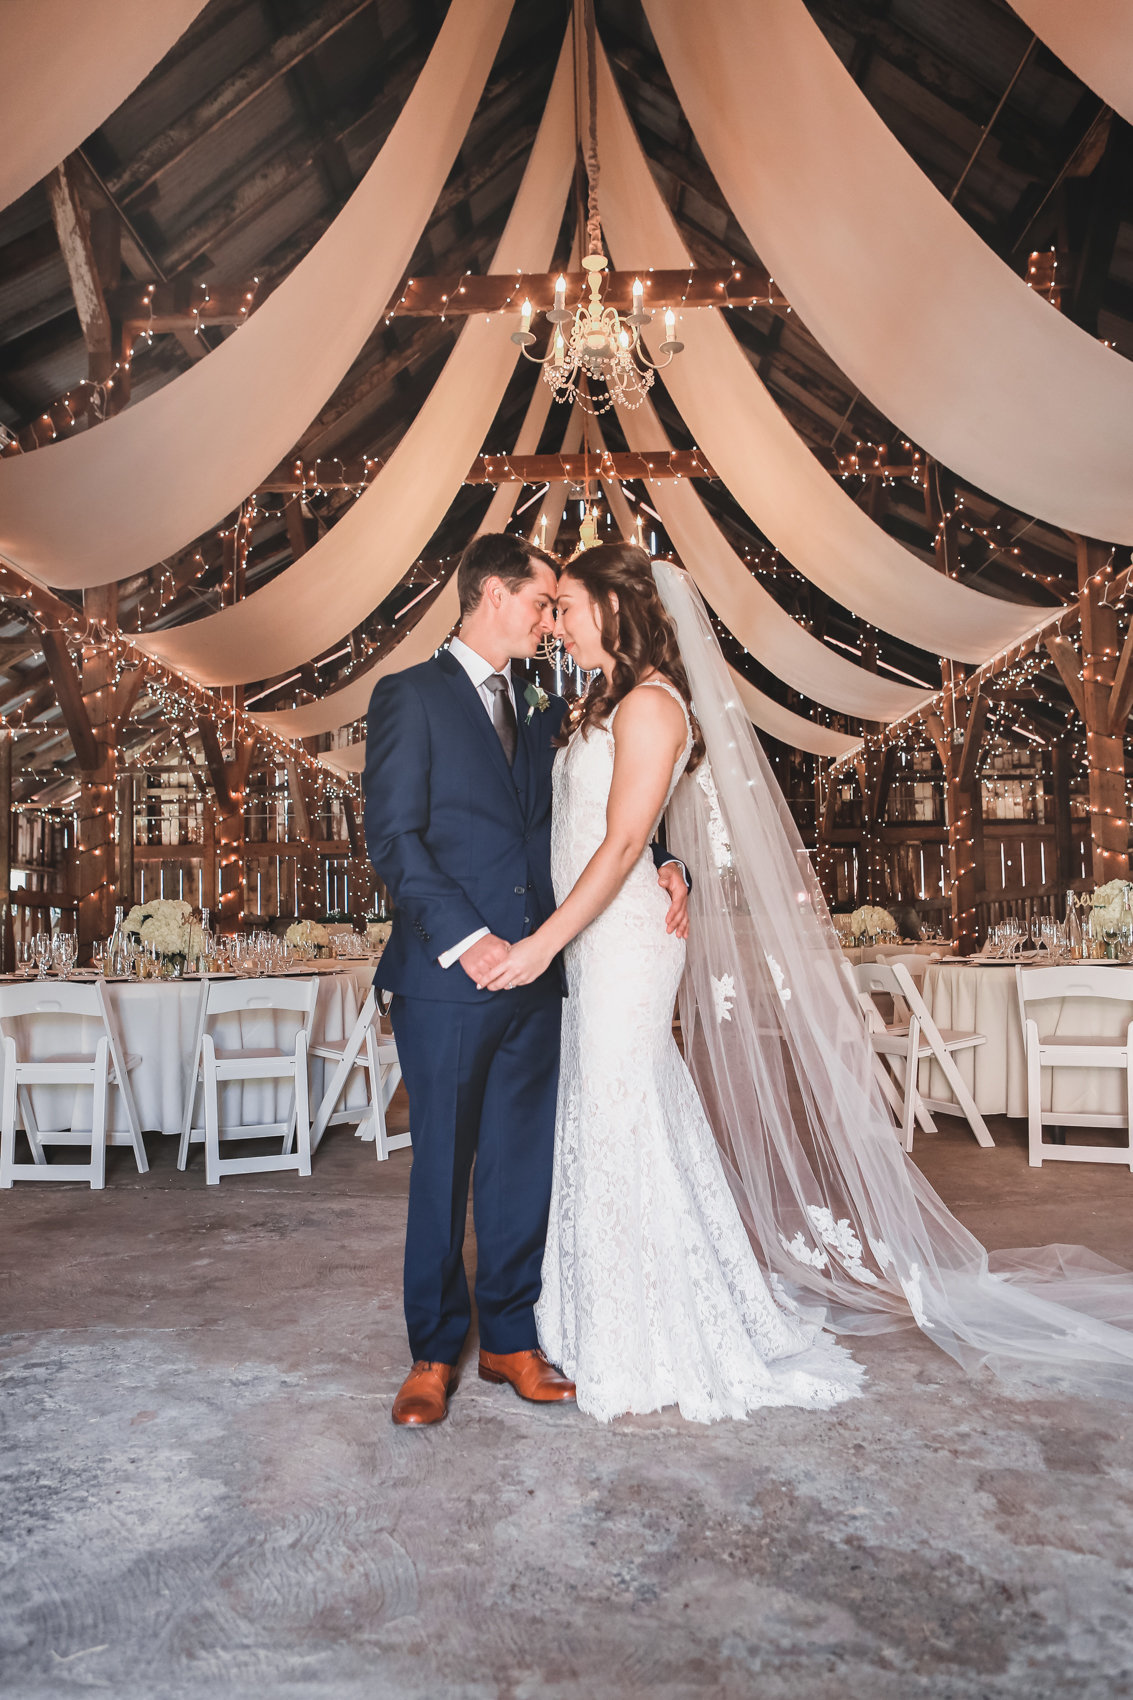 Tented rustic wedding provides beautiful backdrop for portrait of bride and groom